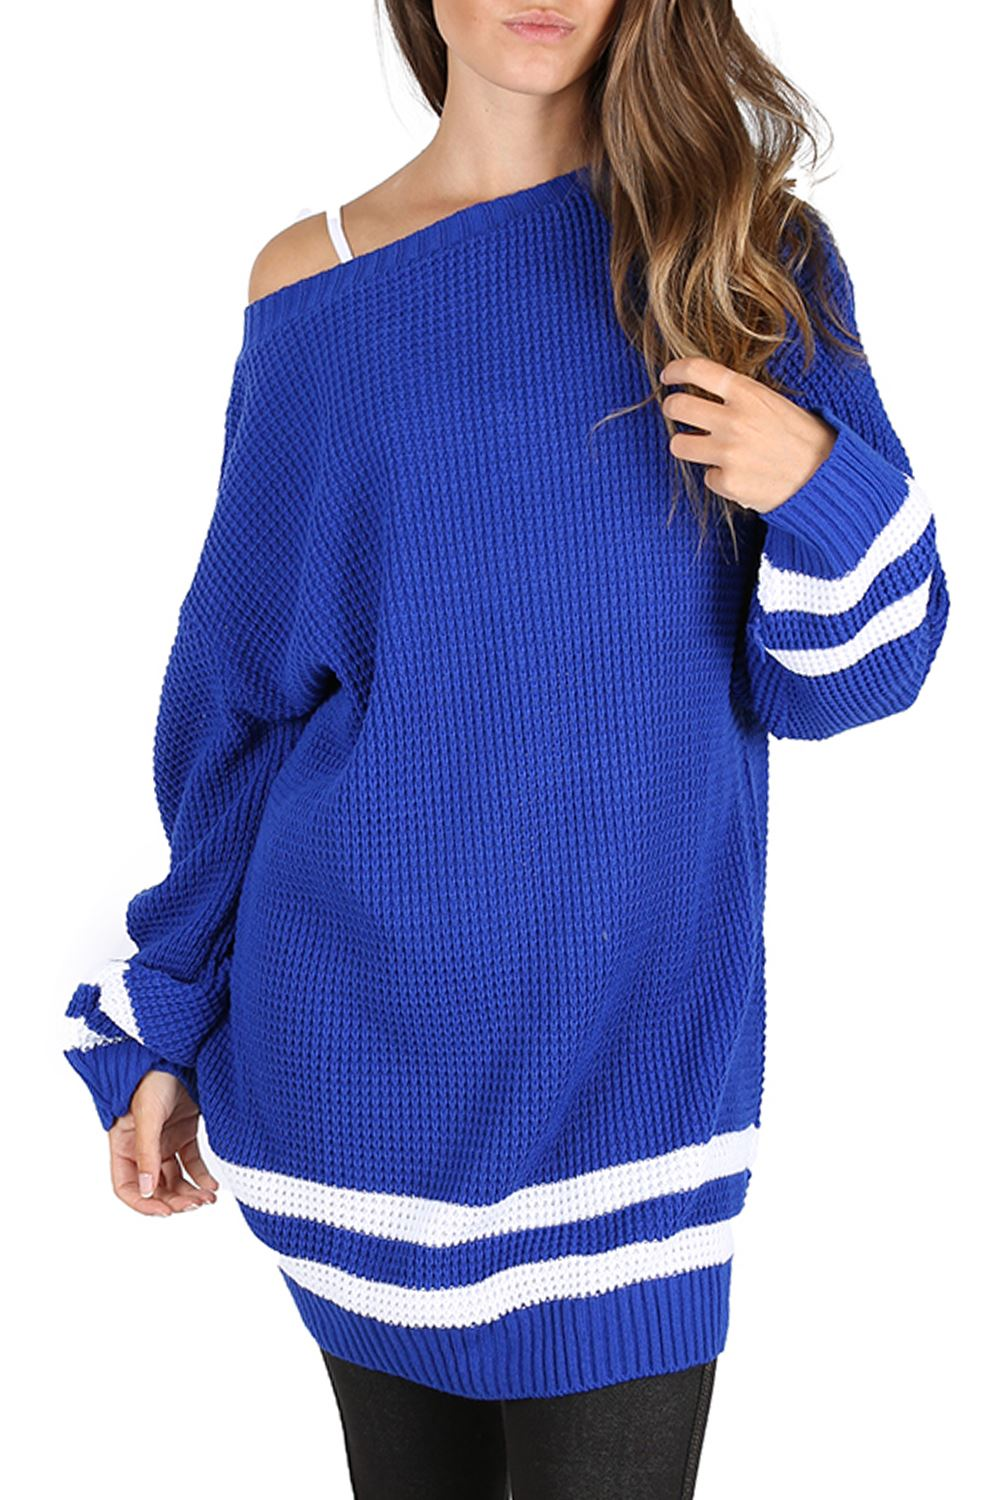 Womens-Oversized-Jumper-Ladies-Dress-Long-Sleeve-Chunky-Knitted-Long-Sweater-Top thumbnail 39